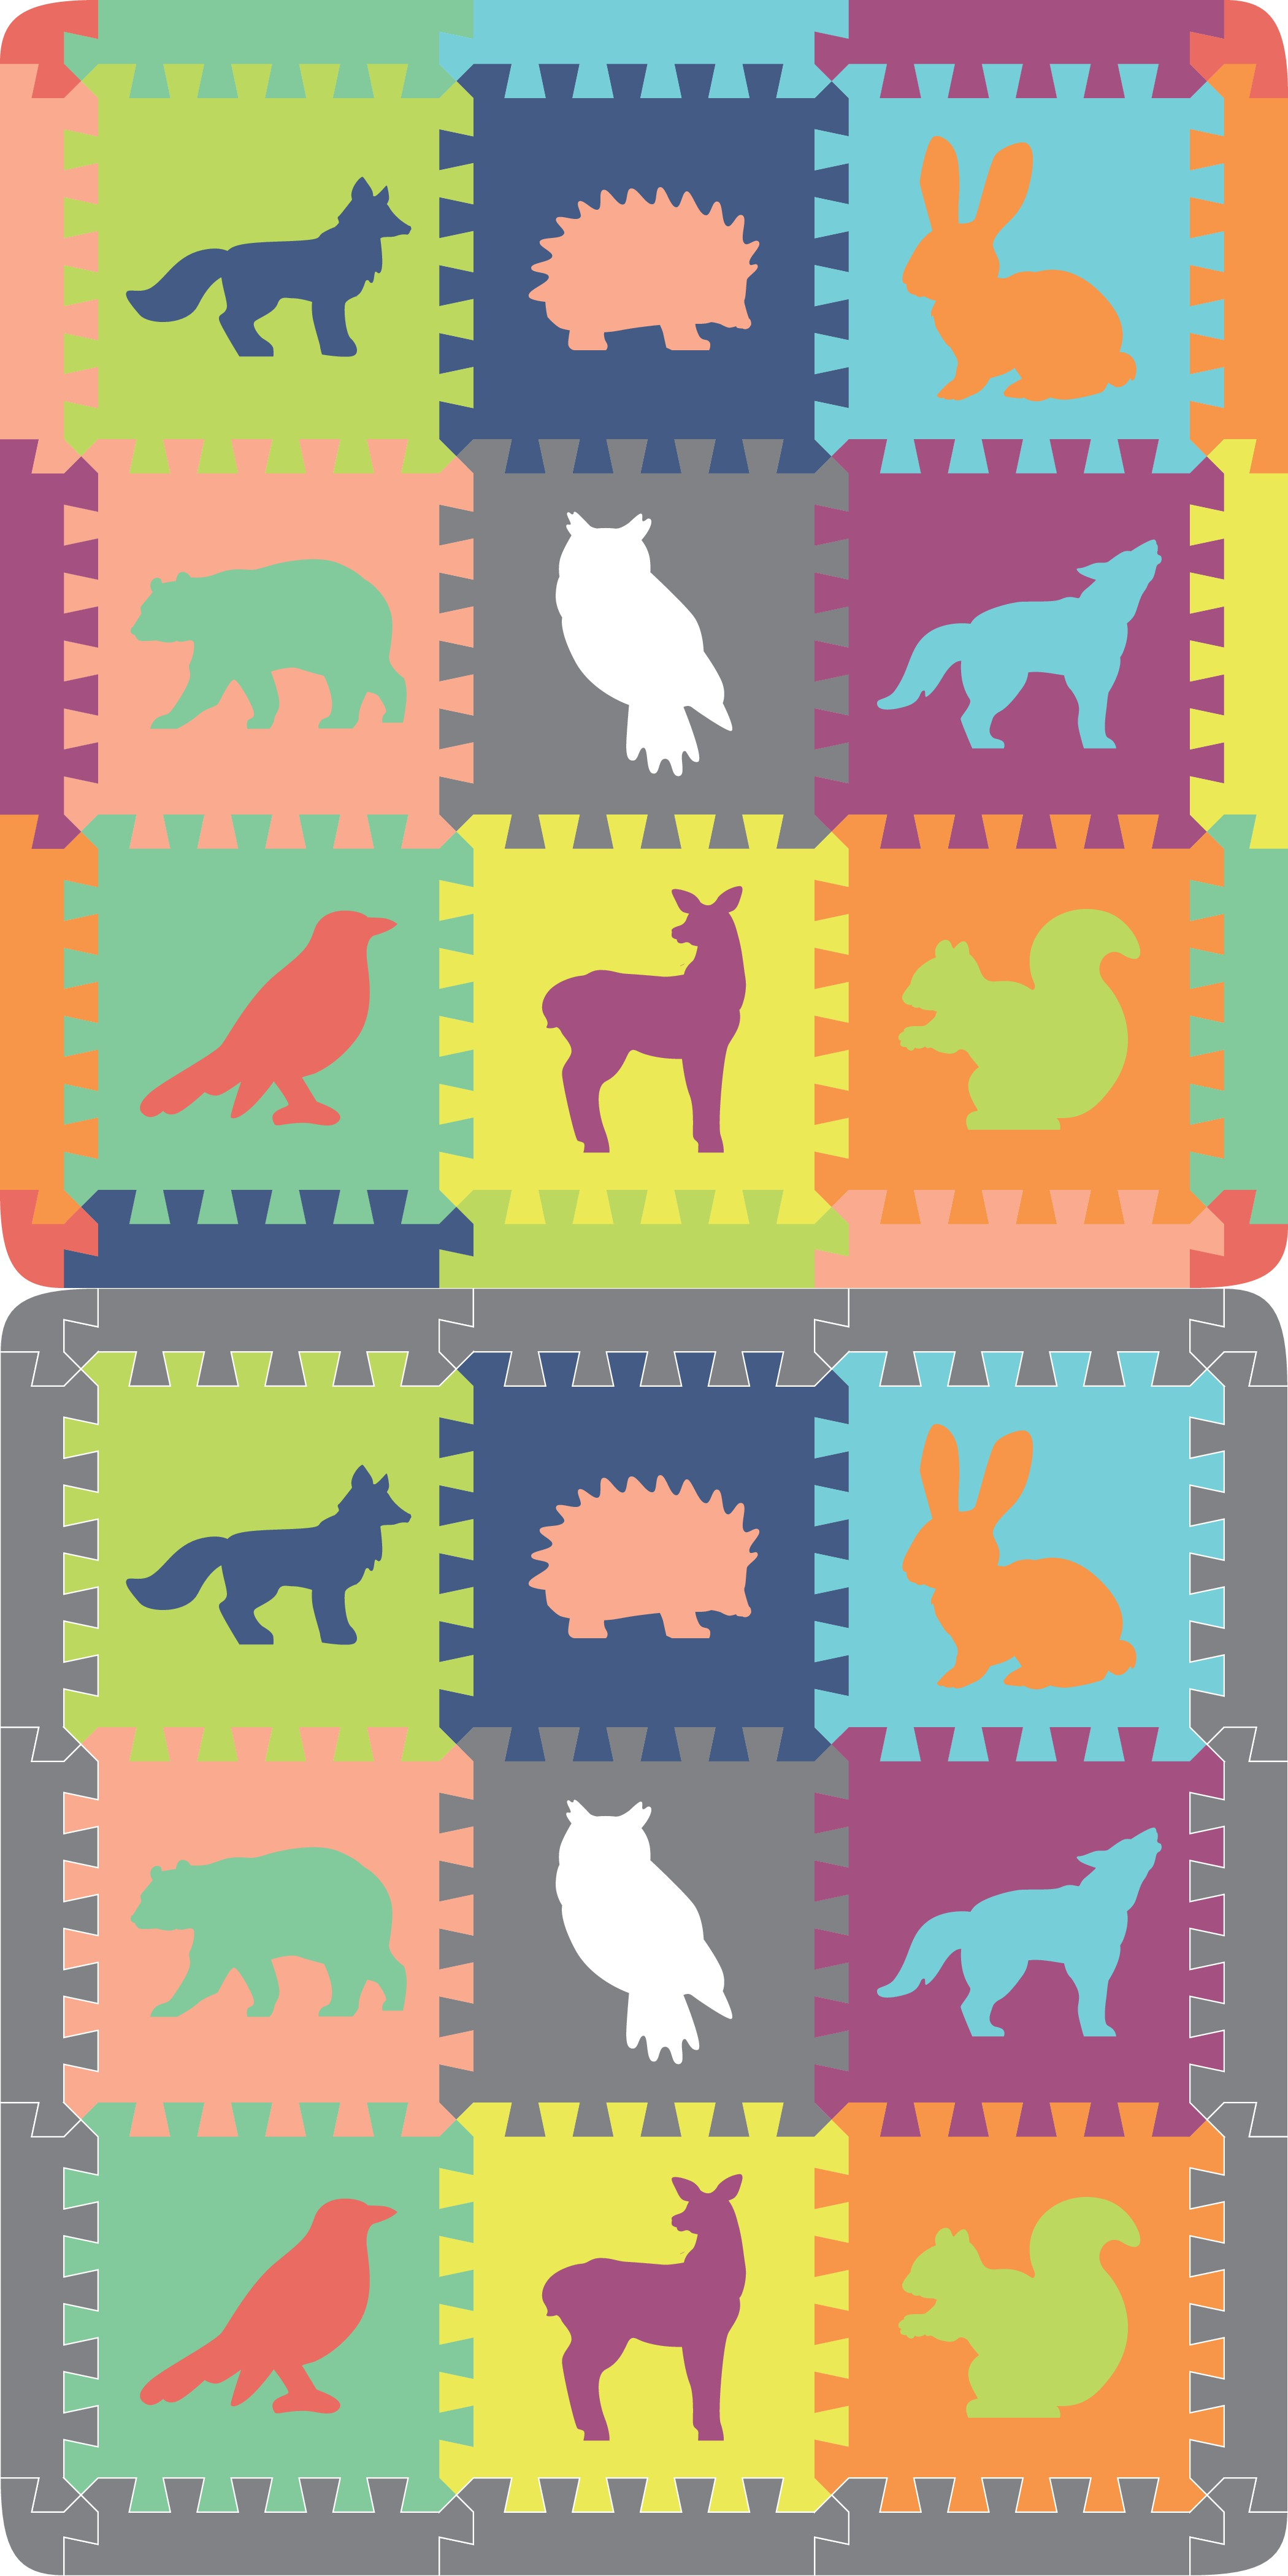 Create a playful set of animal characters for our play mat tiles.  Be creative!